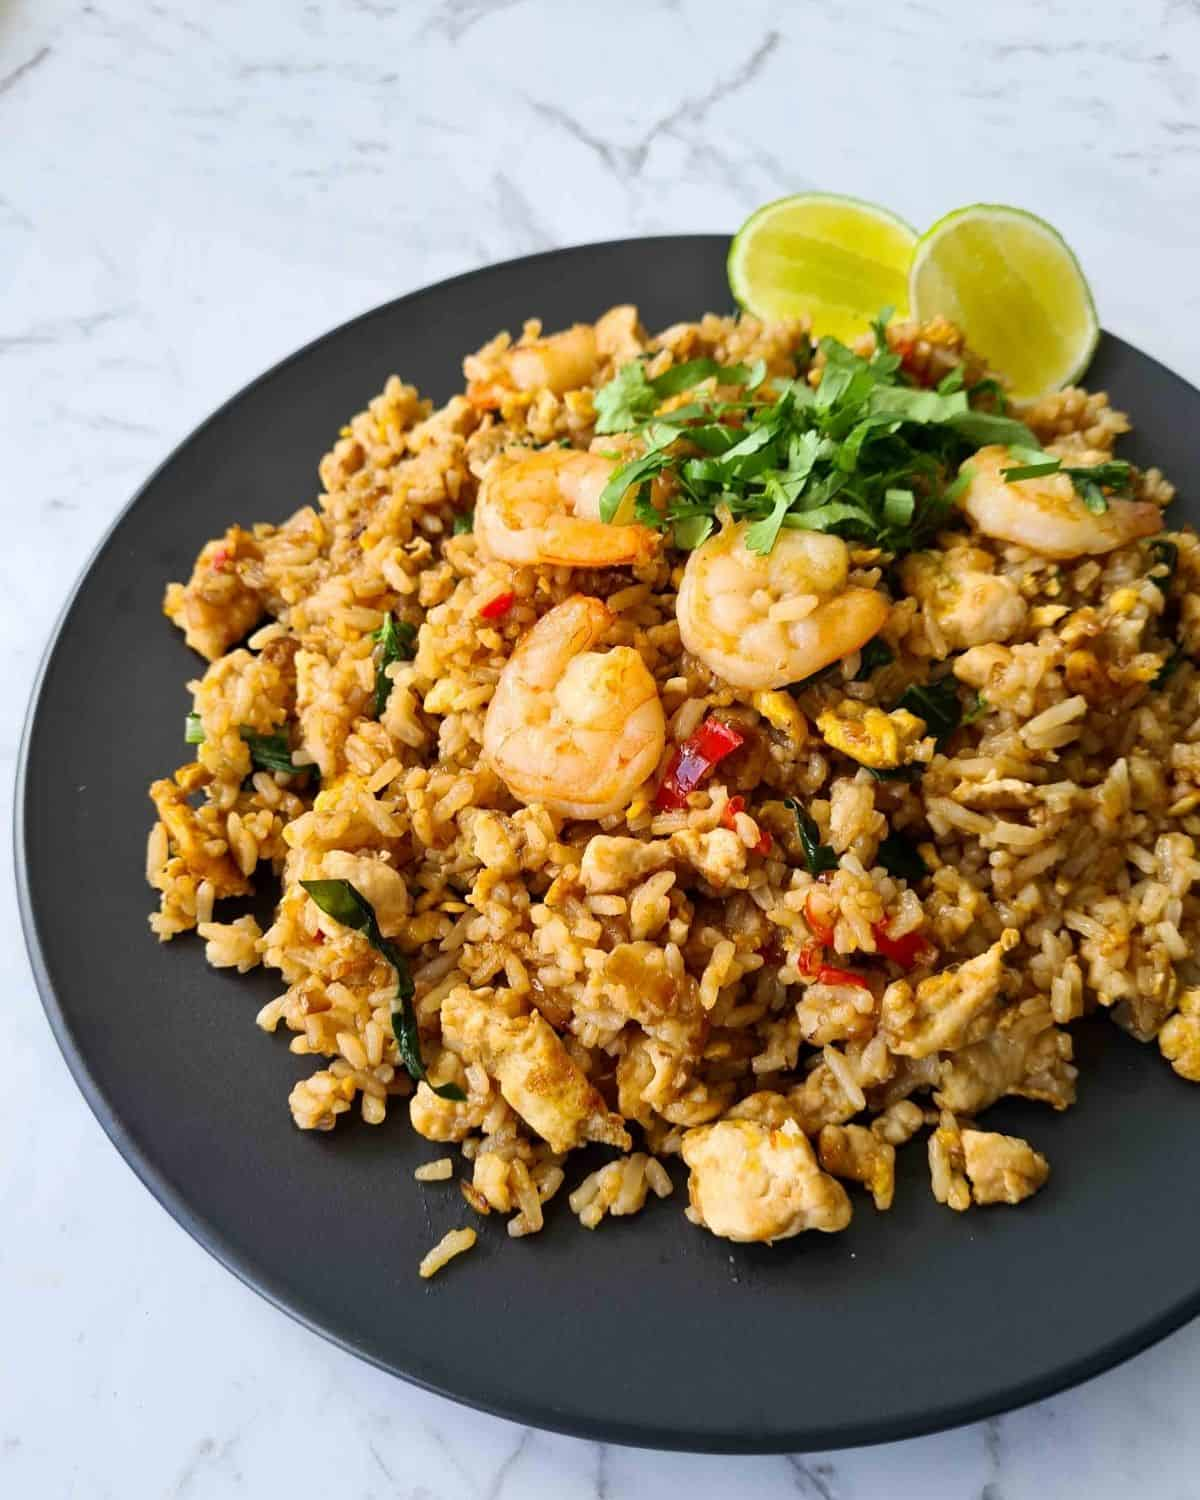 Side view of fried rice, visibly showing prawns, coriander and details in the fried rice